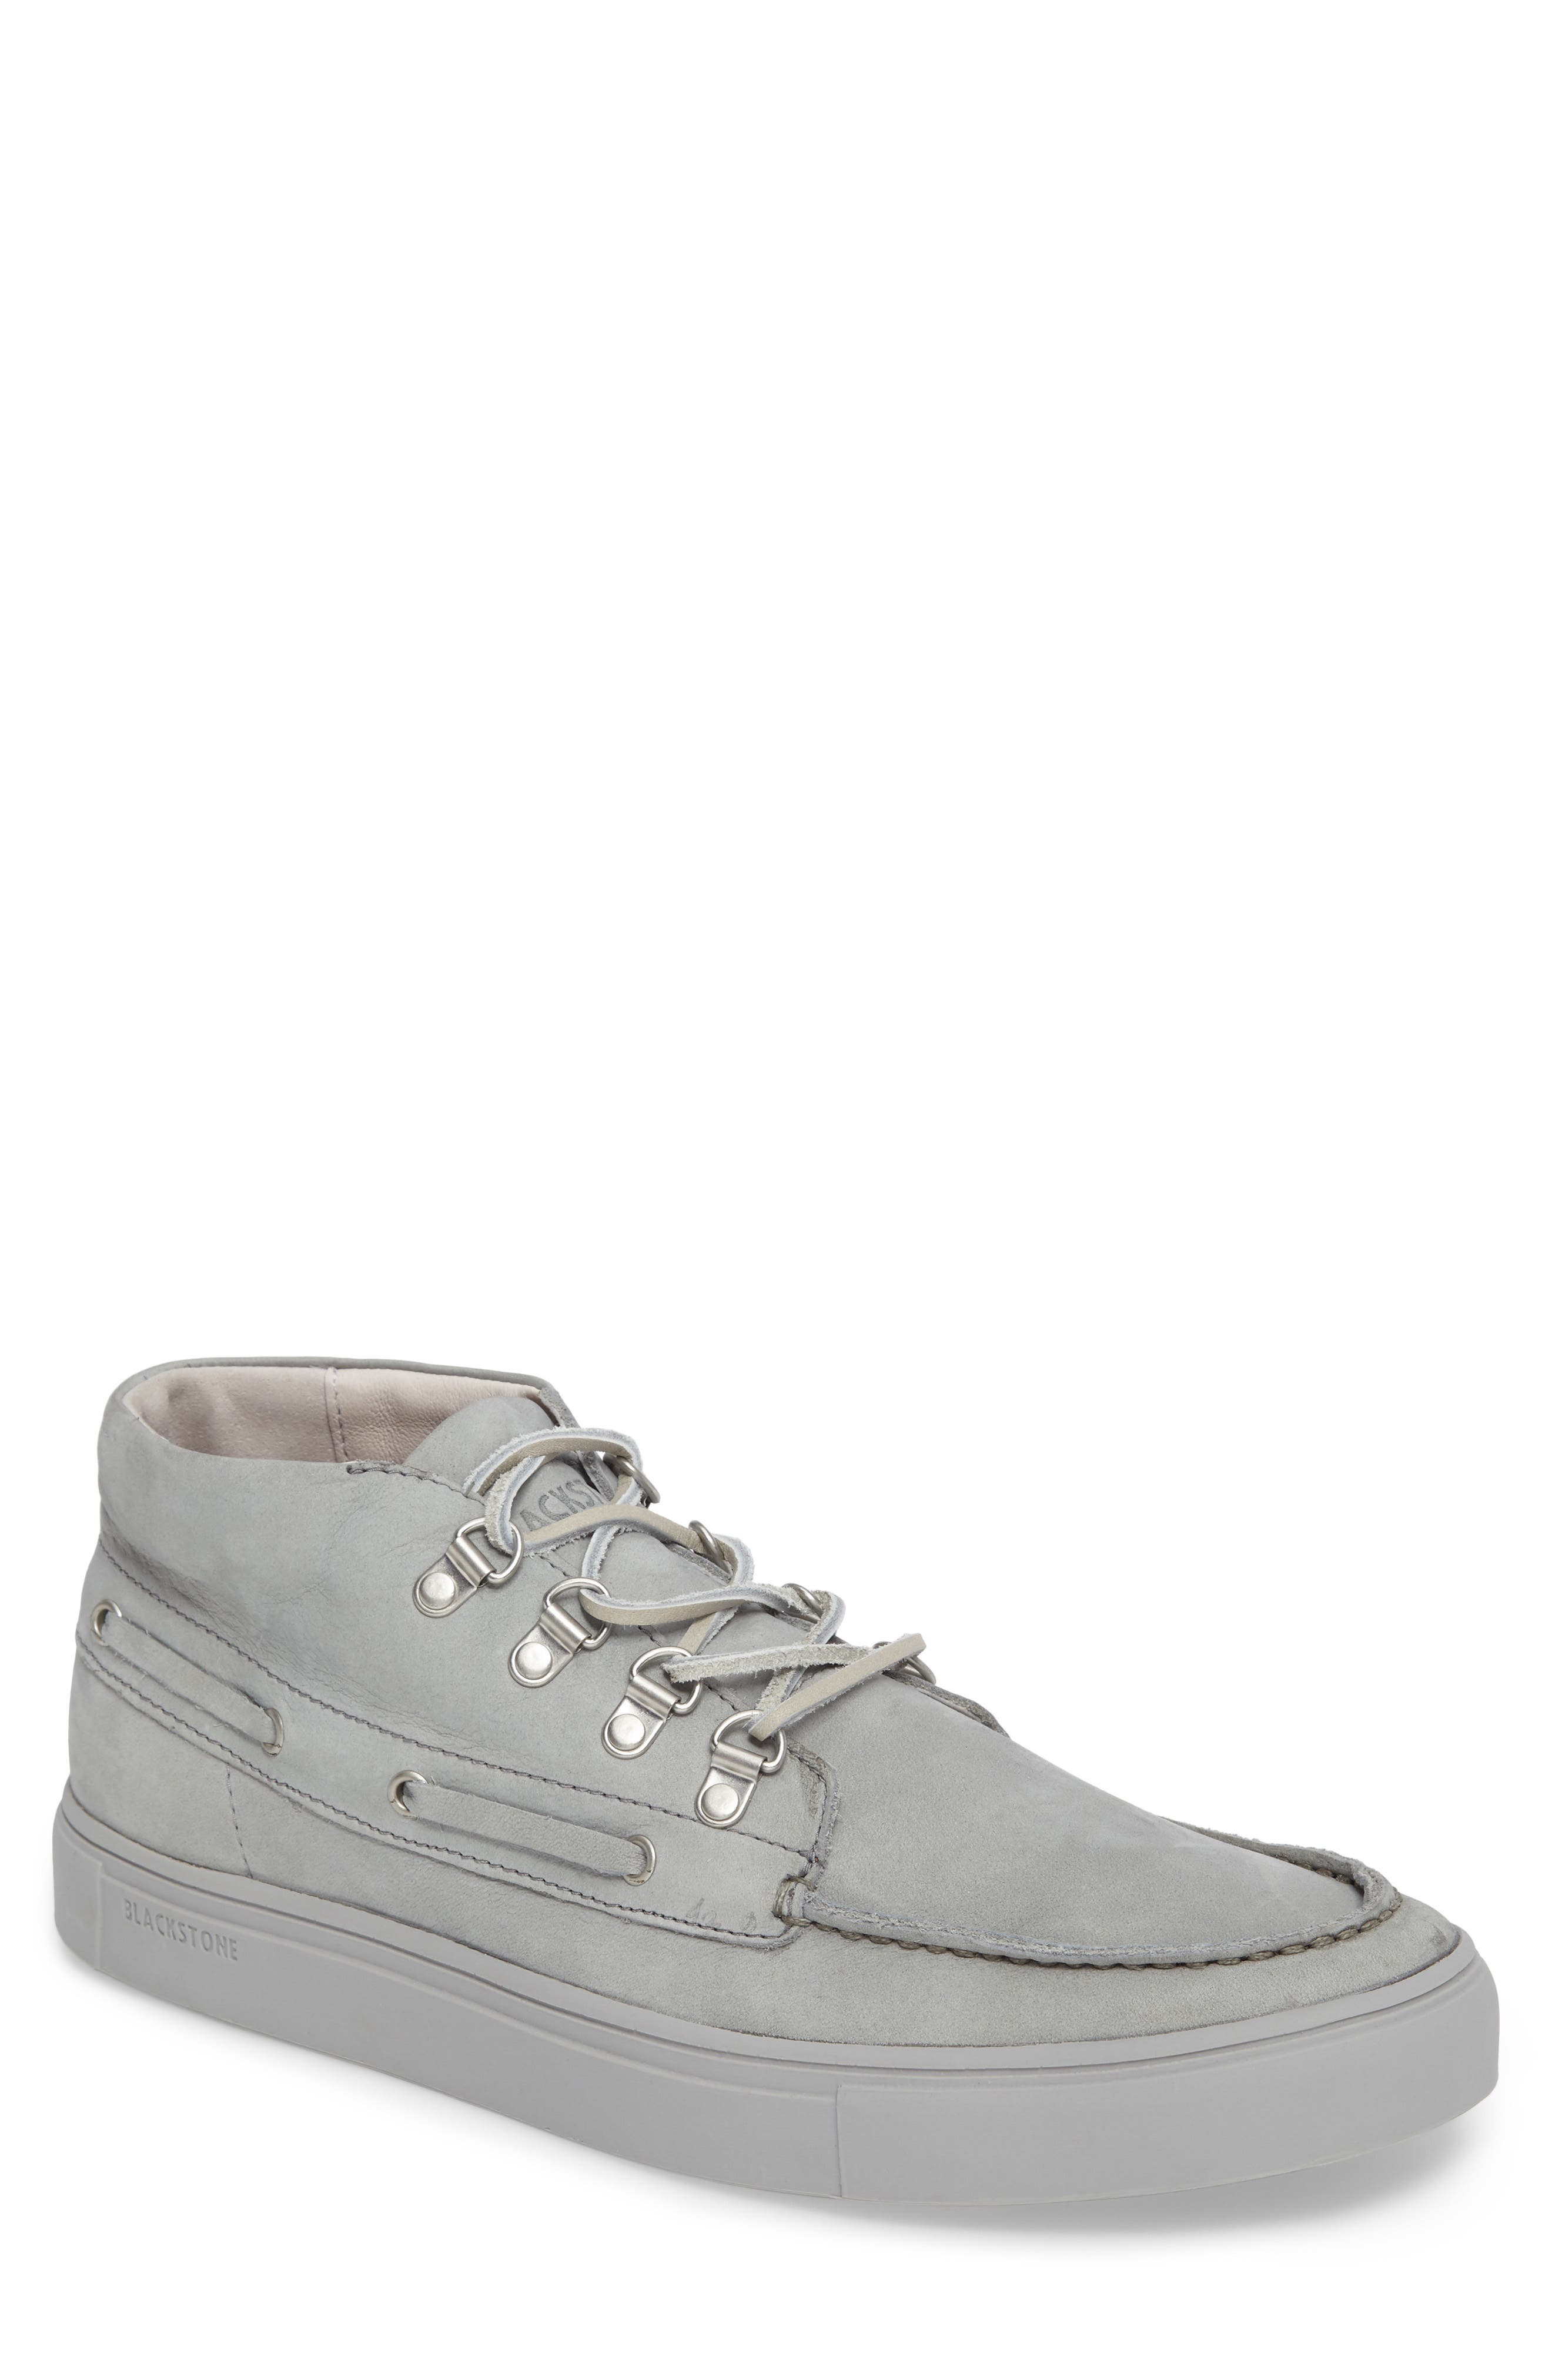 NM09 Mid Top Boat Sneaker,                             Main thumbnail 1, color,                             Limestone Leather